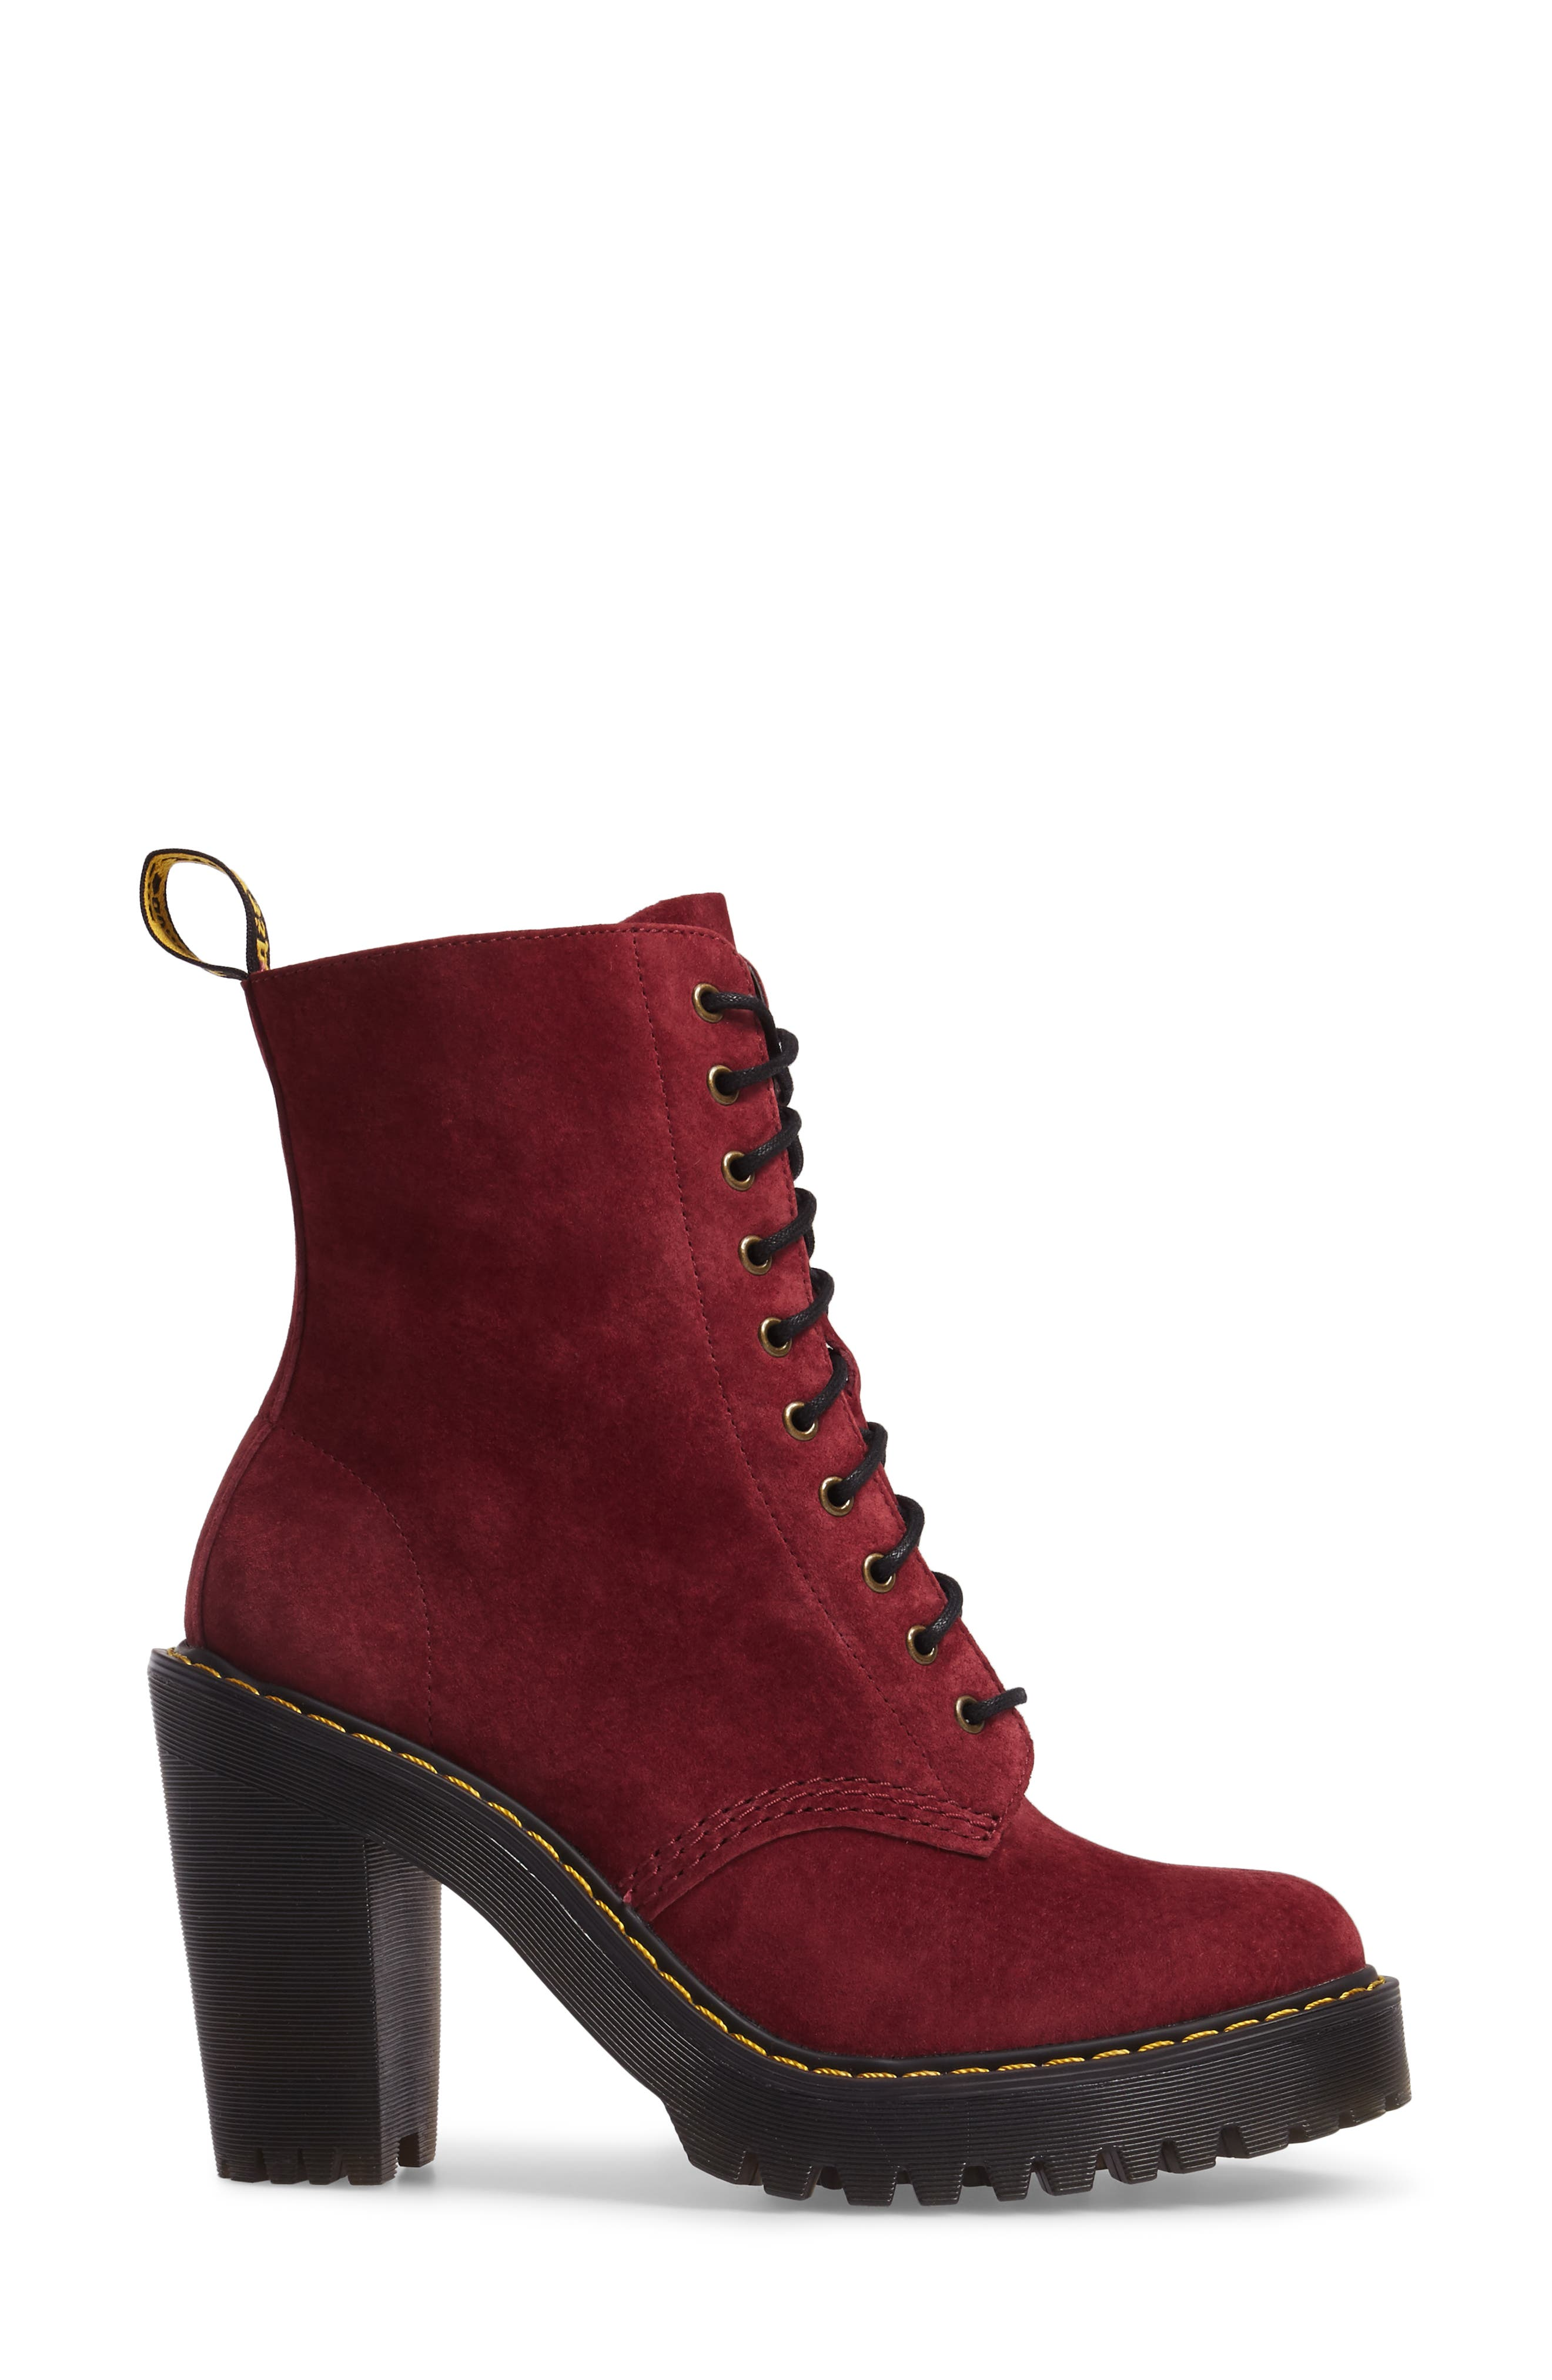 Kendra Heeled Bootie,                             Alternate thumbnail 6, color,